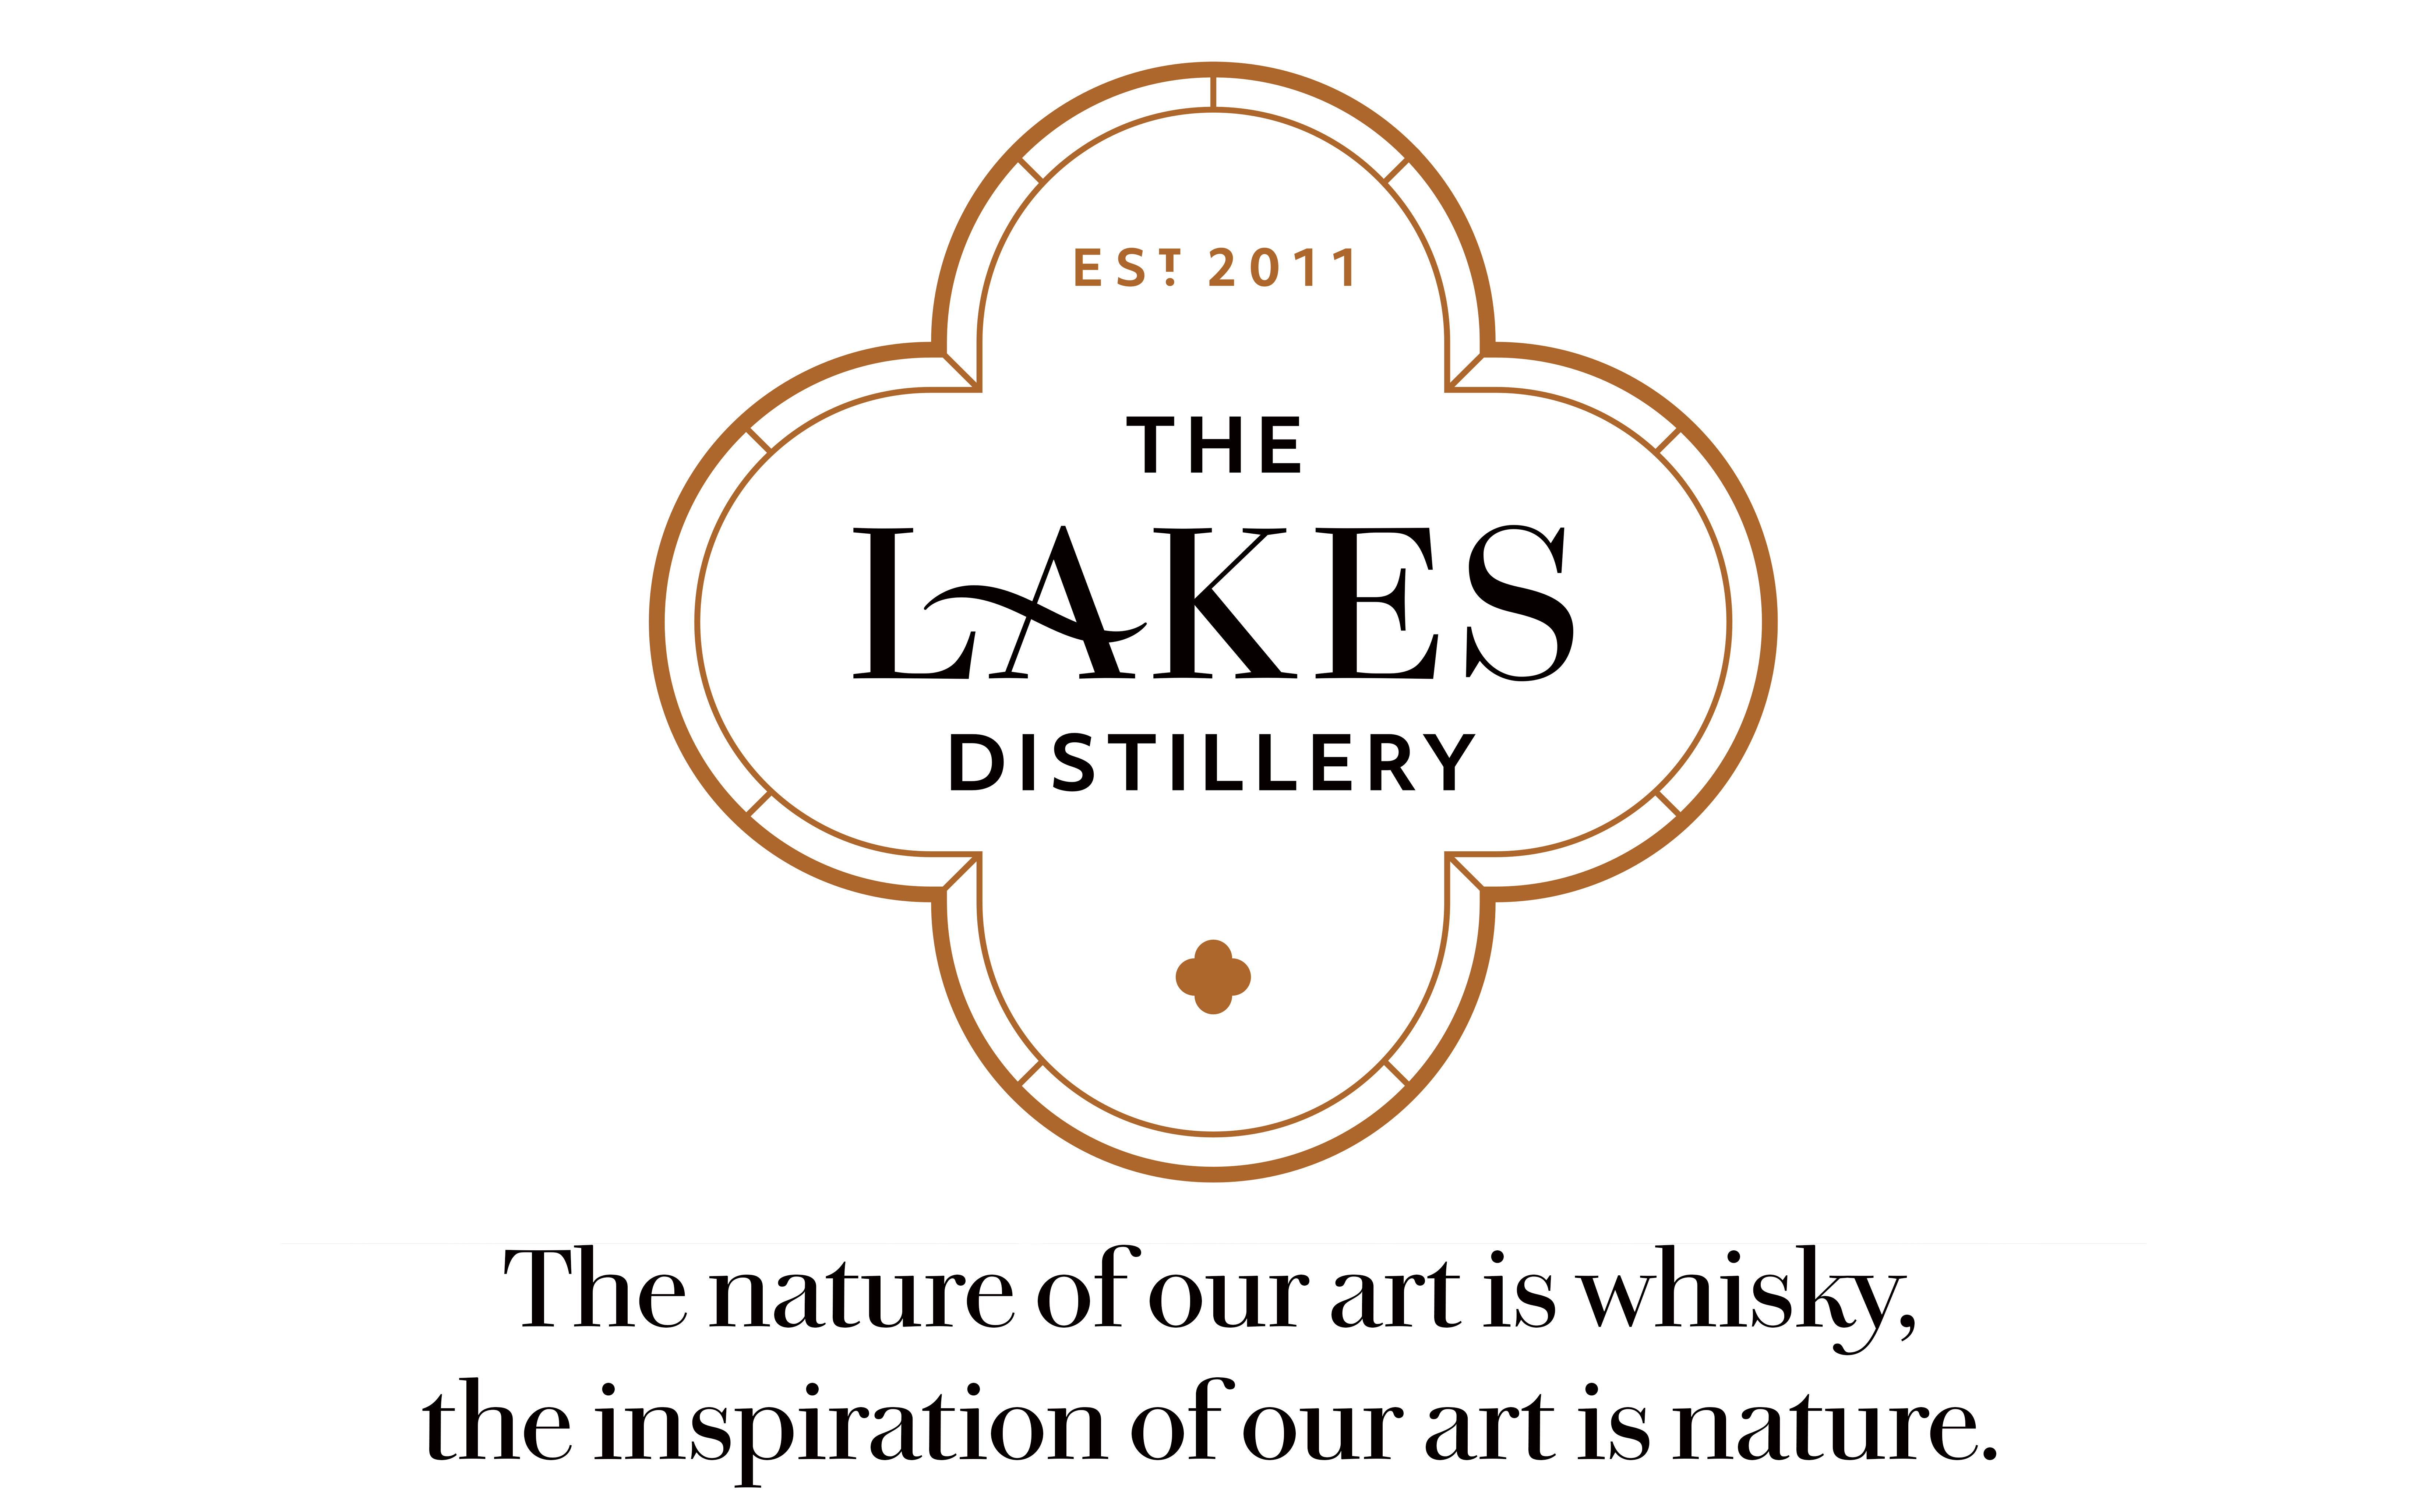 lakes distillery deals